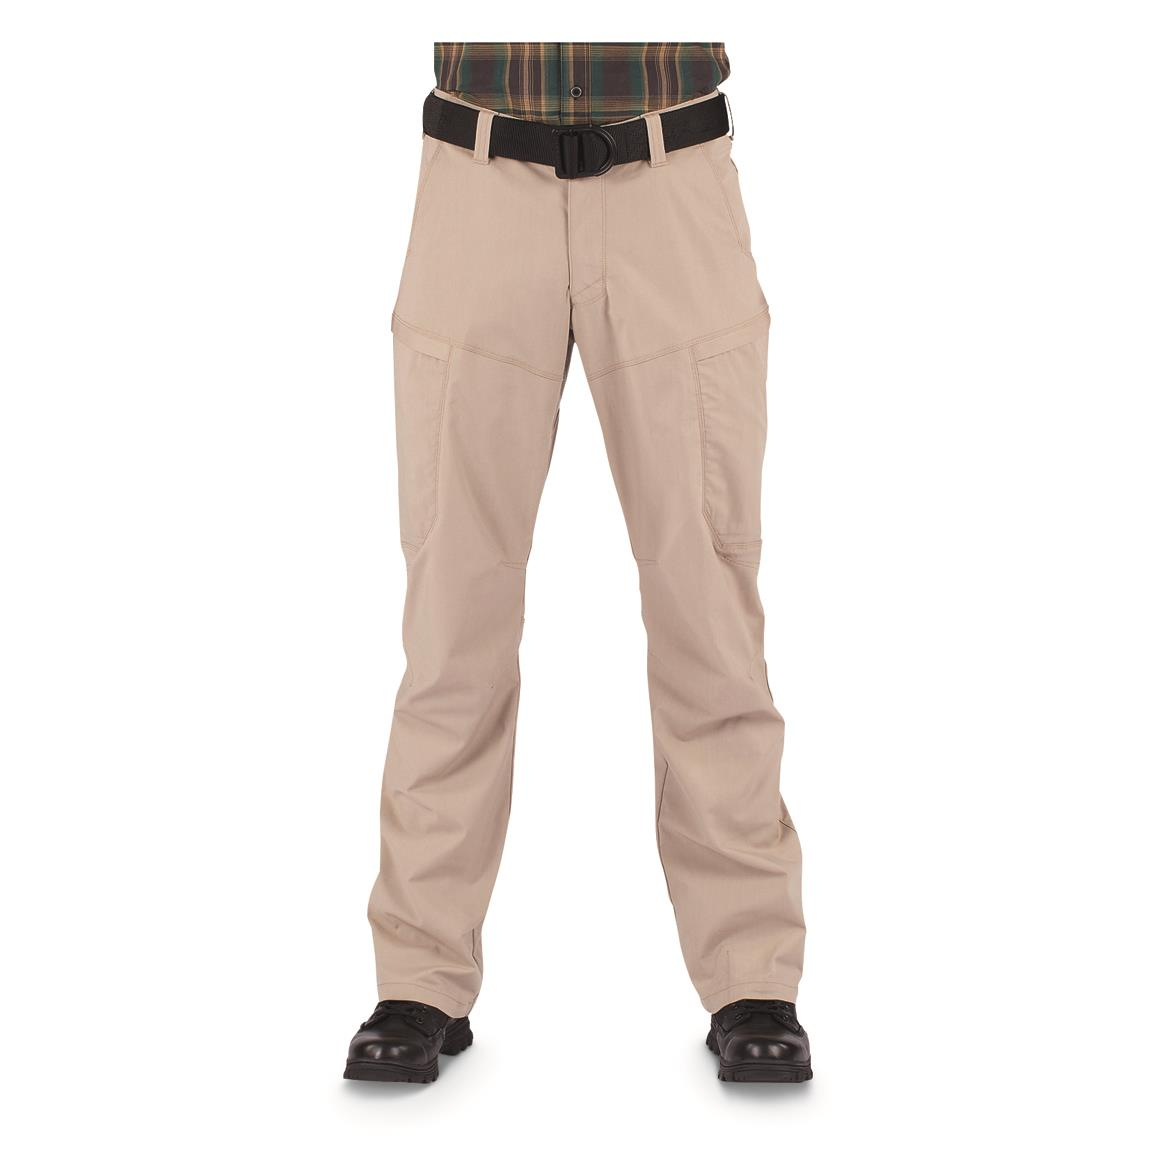 5.11 Tactical Men's Apex Pants, Khaki